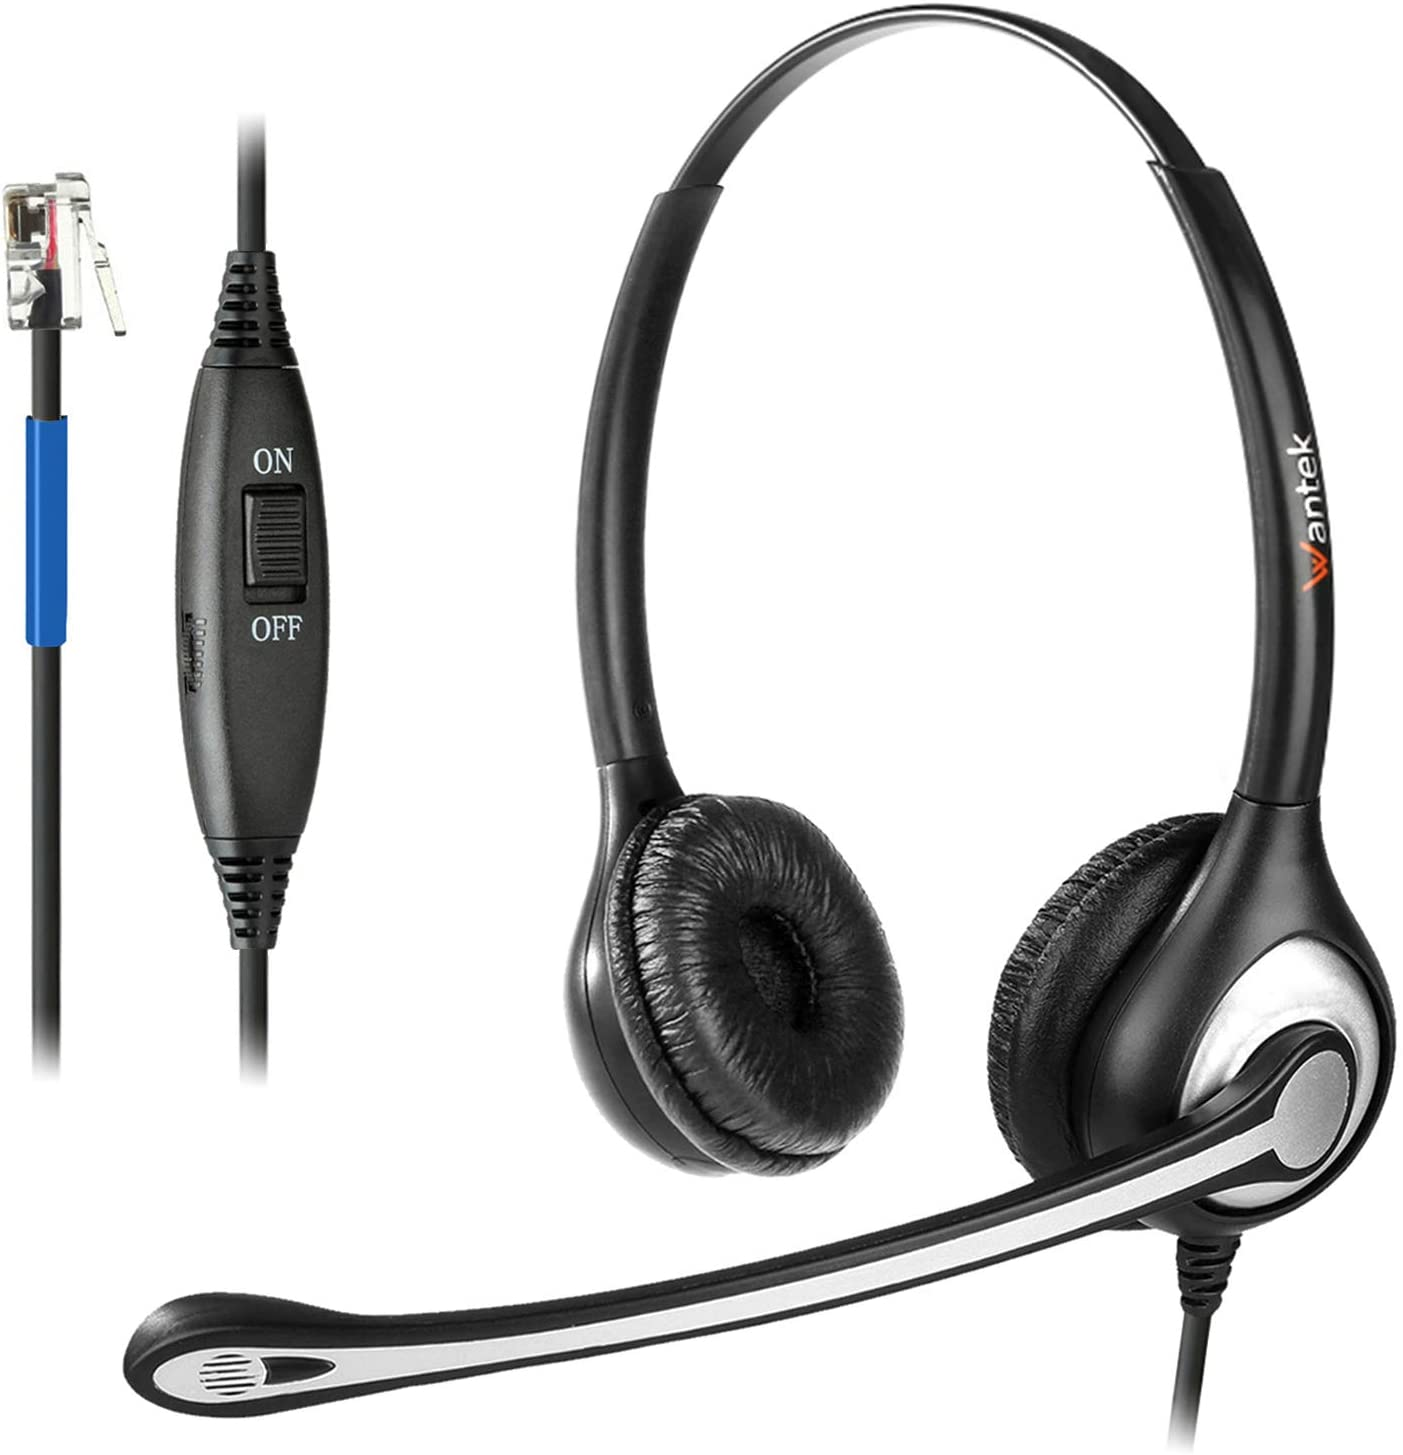 Wantek Phone Headset with Microphone Noise Cancelling, RJ9 Telephone Headsets Compatible with Cisco Office Phones 7940 7942 7945 79607962 7965 7811 7821 8811 8841 8845 8851 Plantronics M12 M22